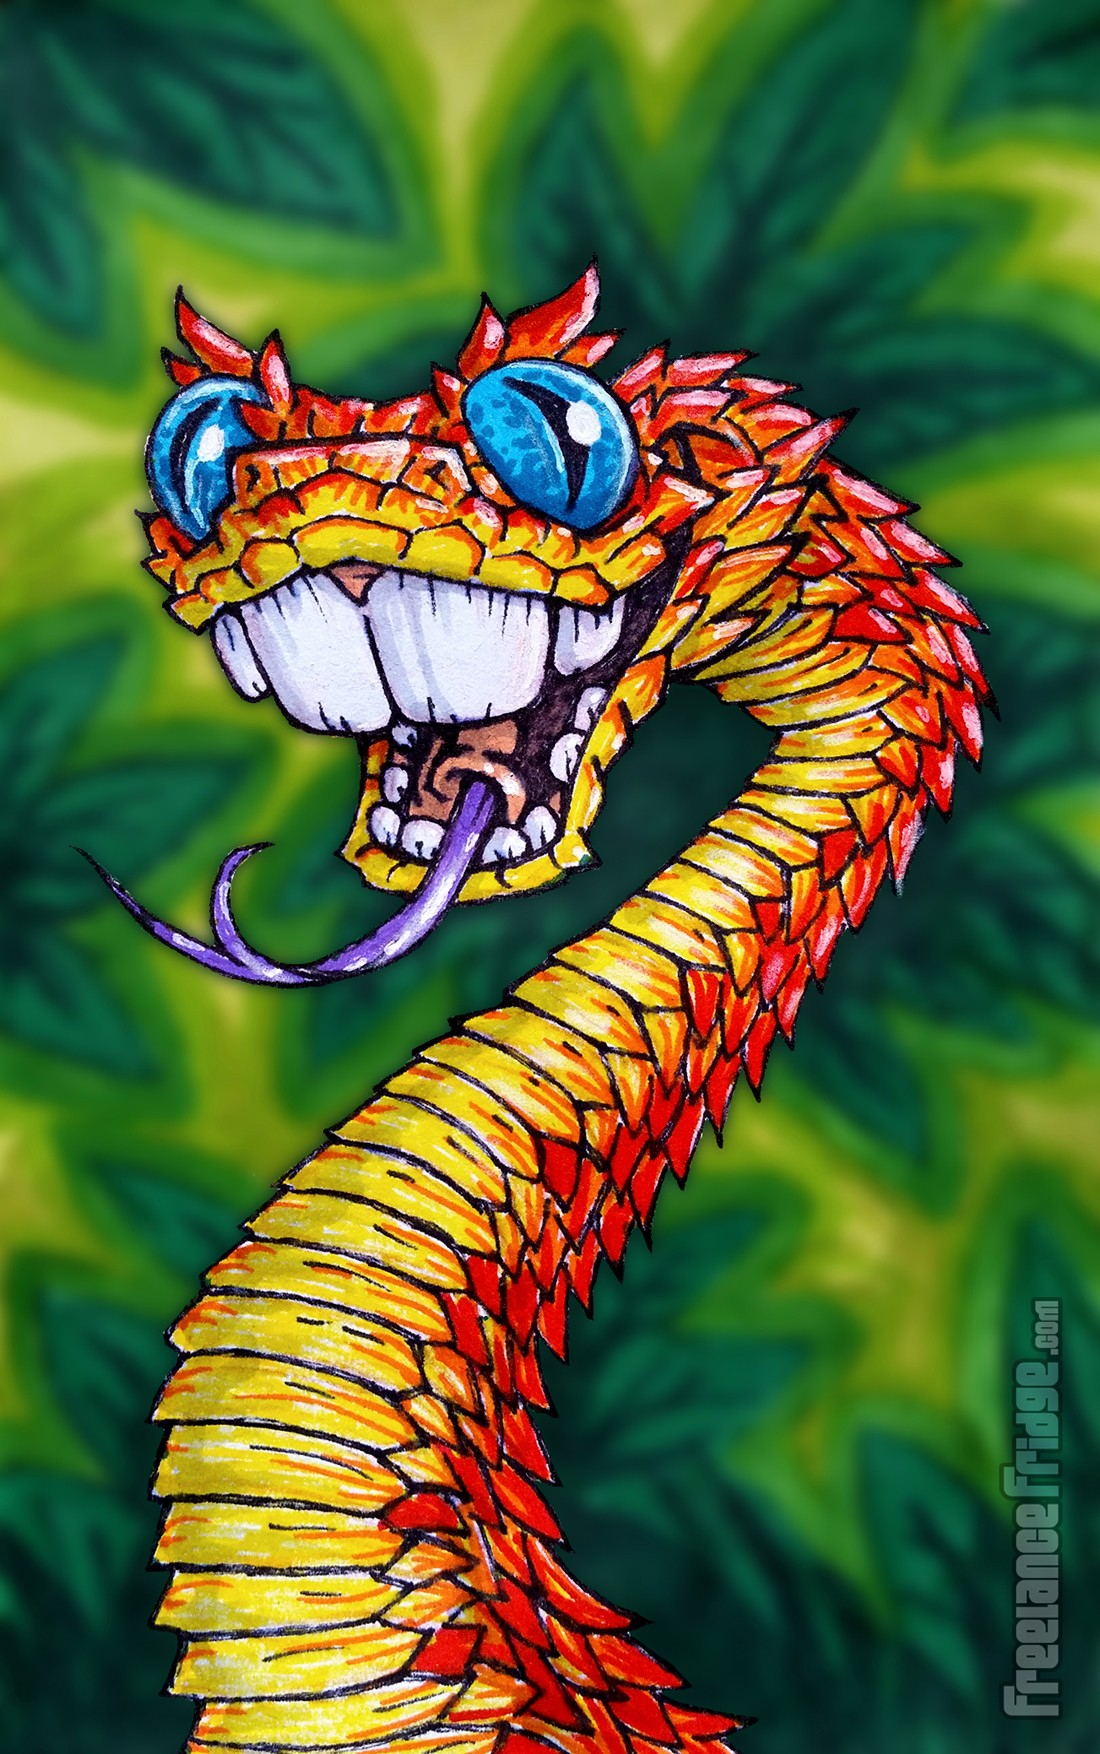 Bush Viper Snake with buck teeth Cartoon Drawing illustration colored with markers